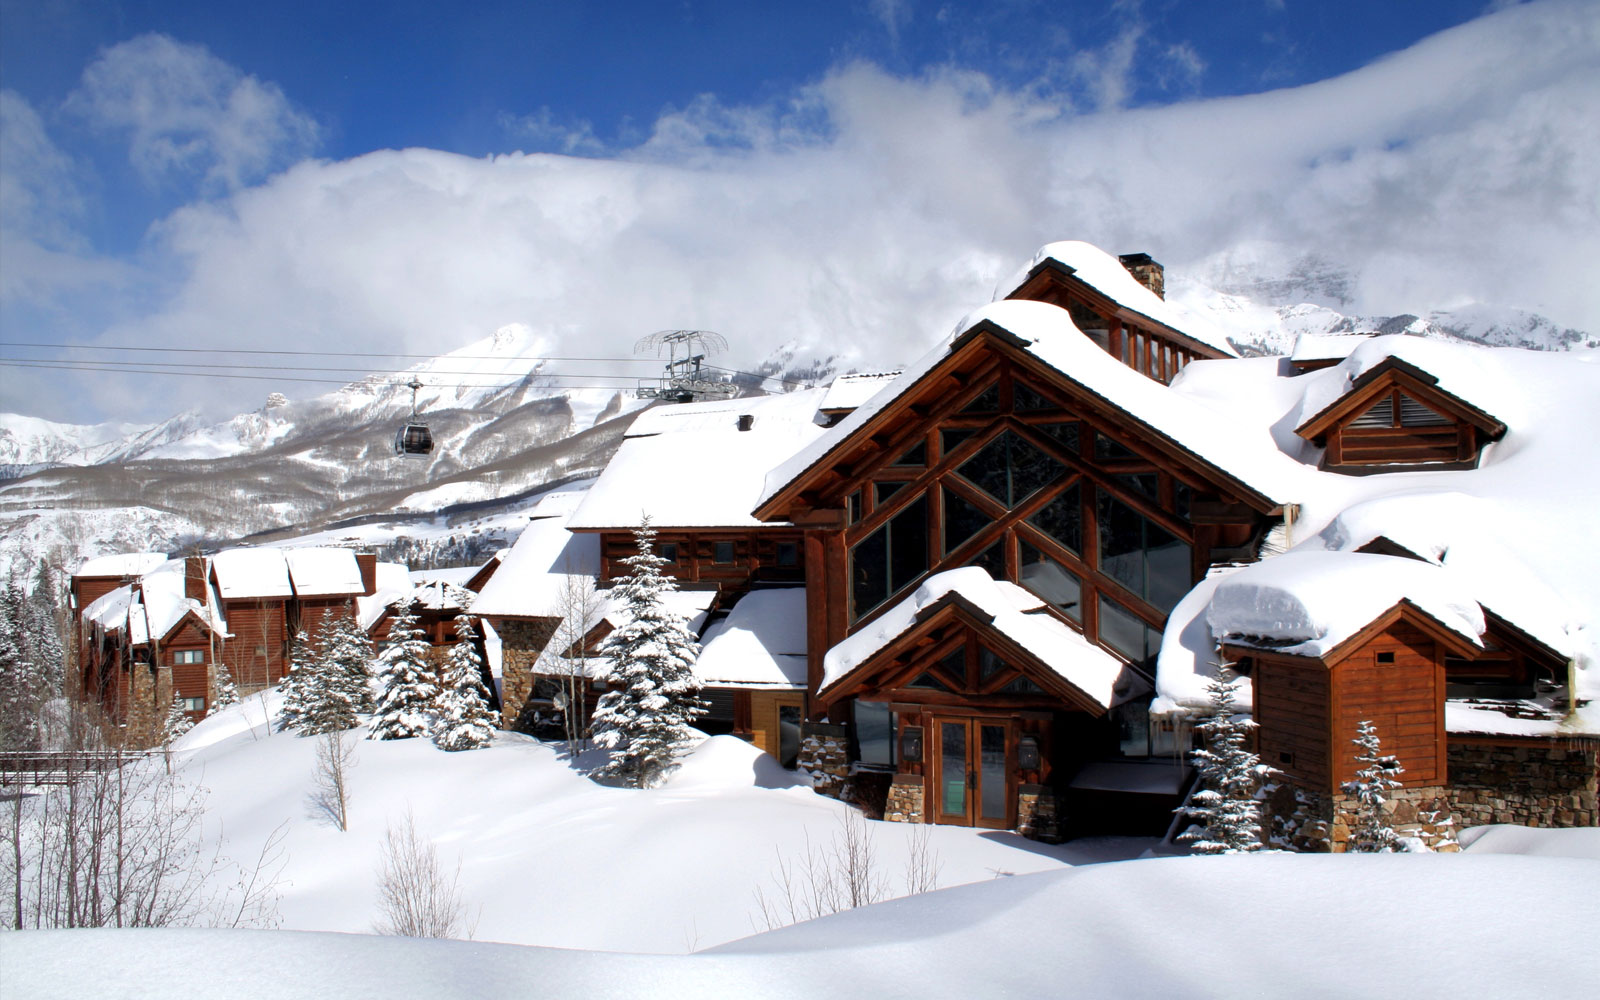 Majestic Fall Wallpaper Upscale Telluride Co Hotel Reservations Mountain Lodge